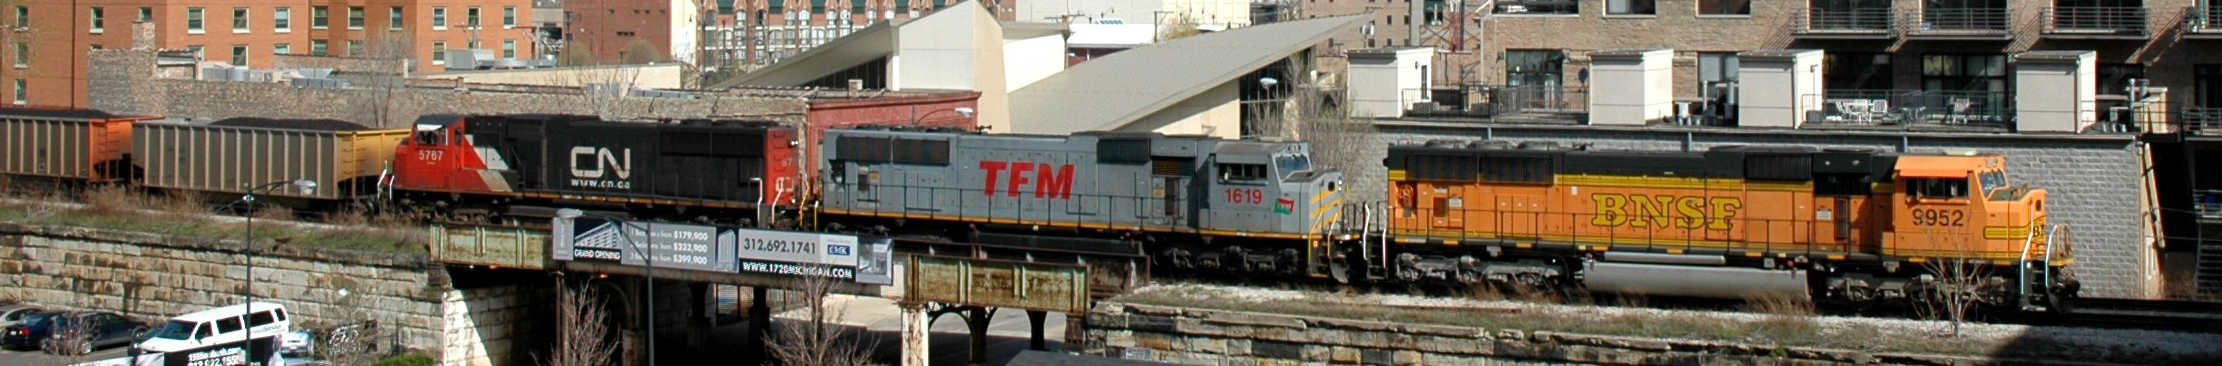 CN Freight Train - 16th St. Chicago